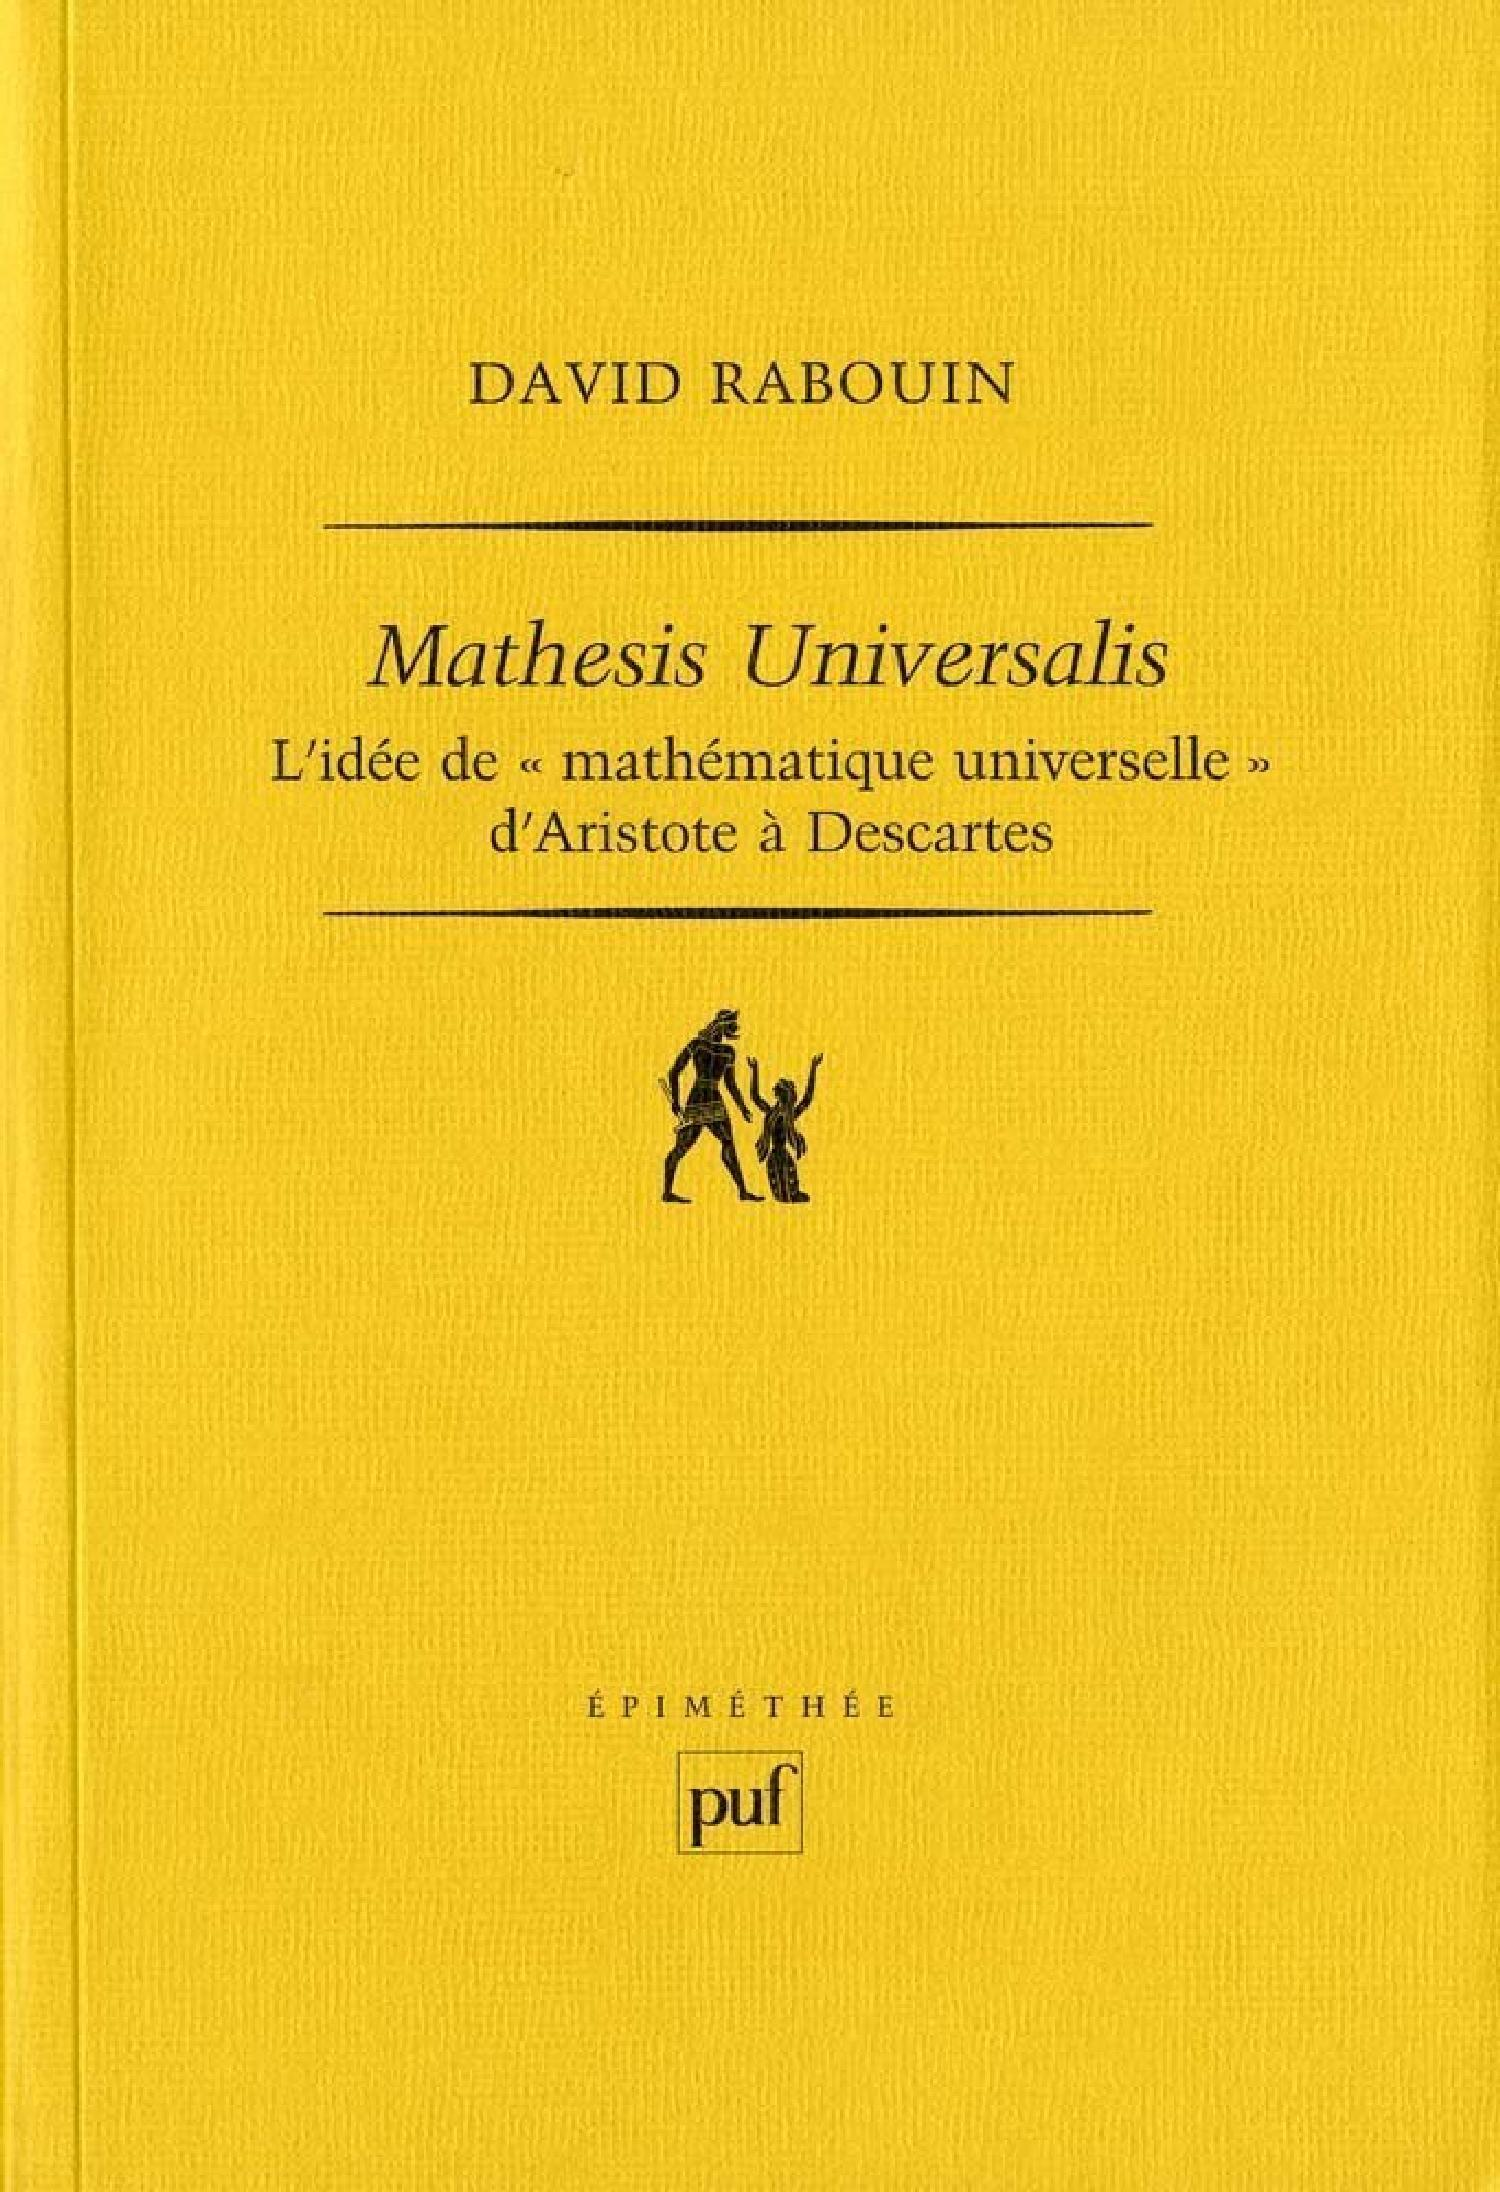 Mathesis universalis De David Rabouin - Presses Universitaires de France